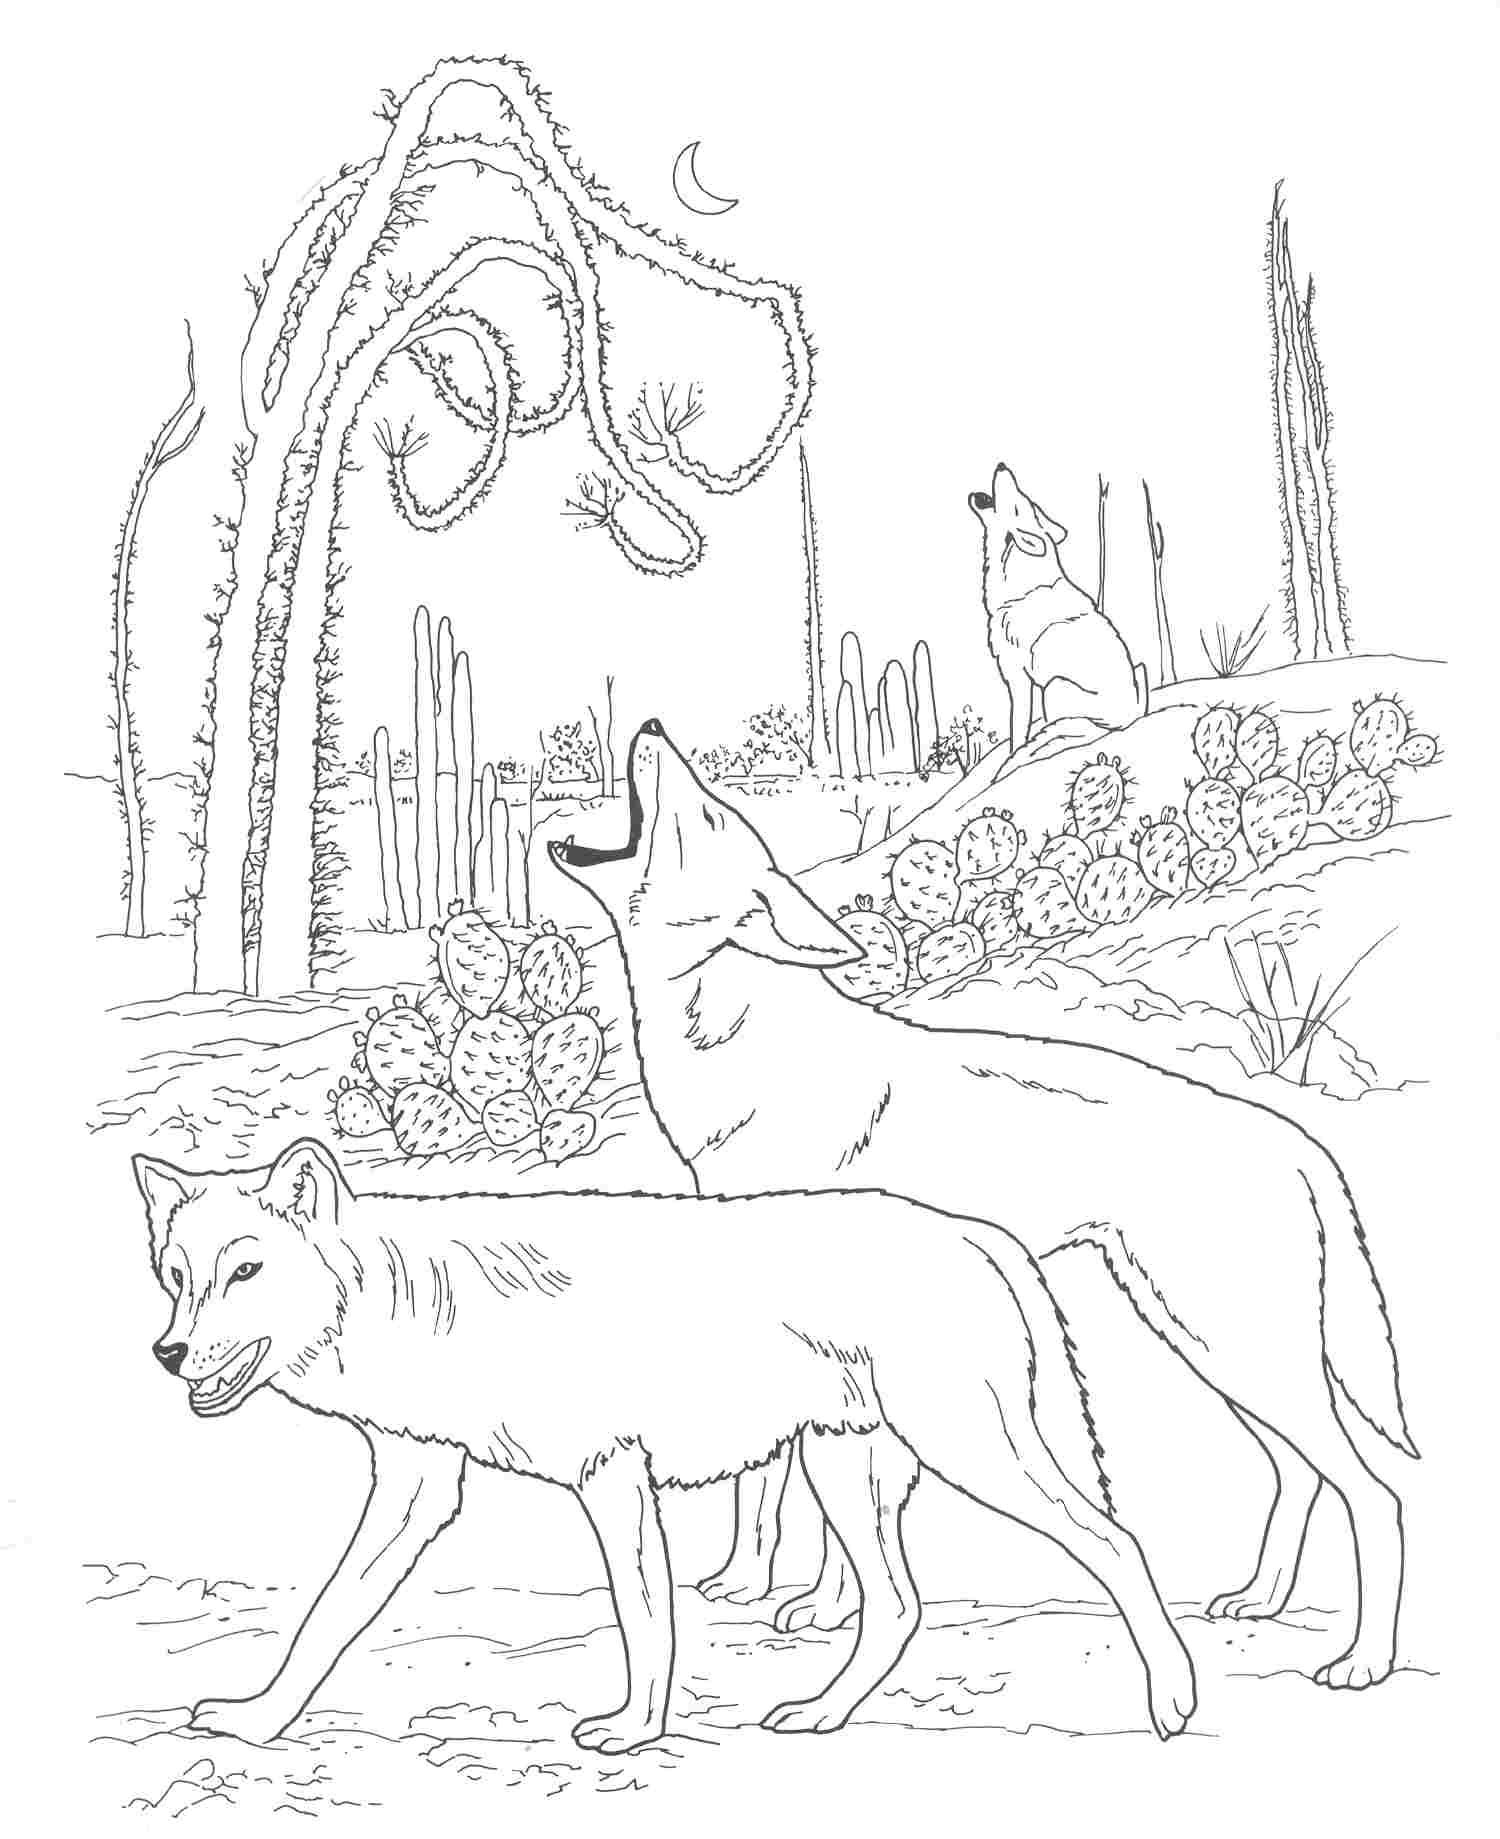 coyote coloring page free coyote coloring page coyote coloring page